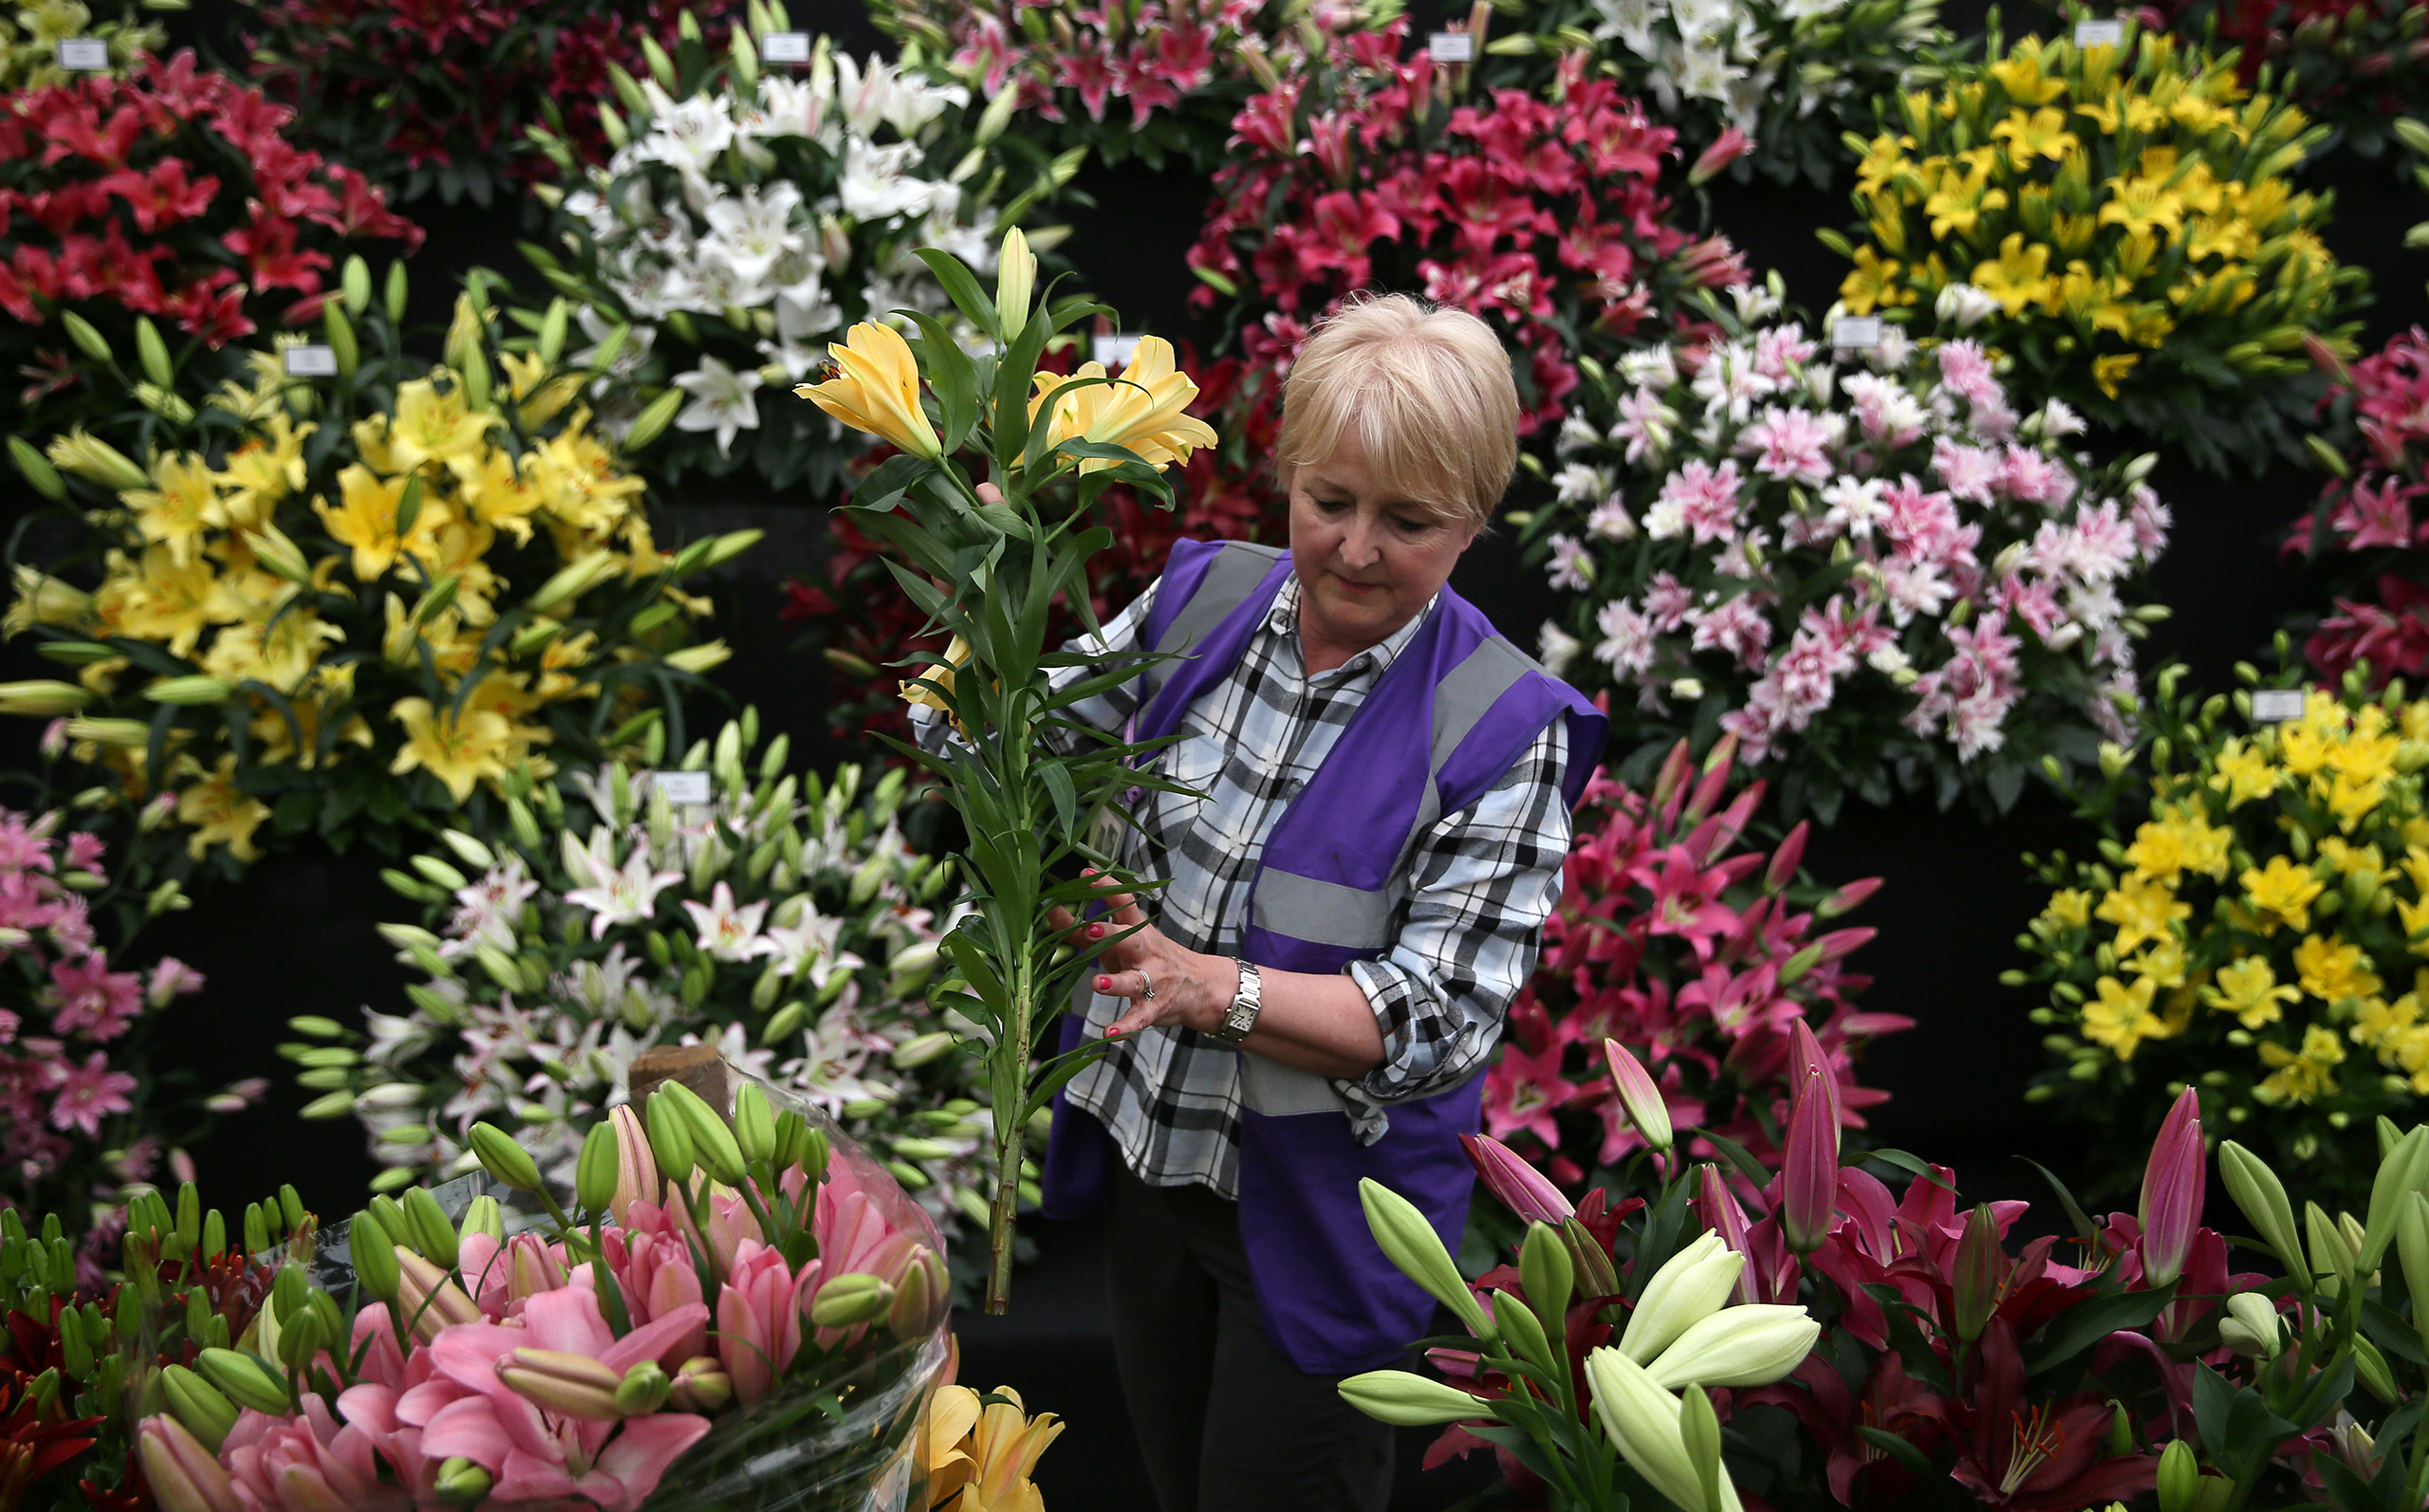 A woman arranges a display of lillies during preparations for the RHS Chelsea Flower Show in London, May 21, 2016.